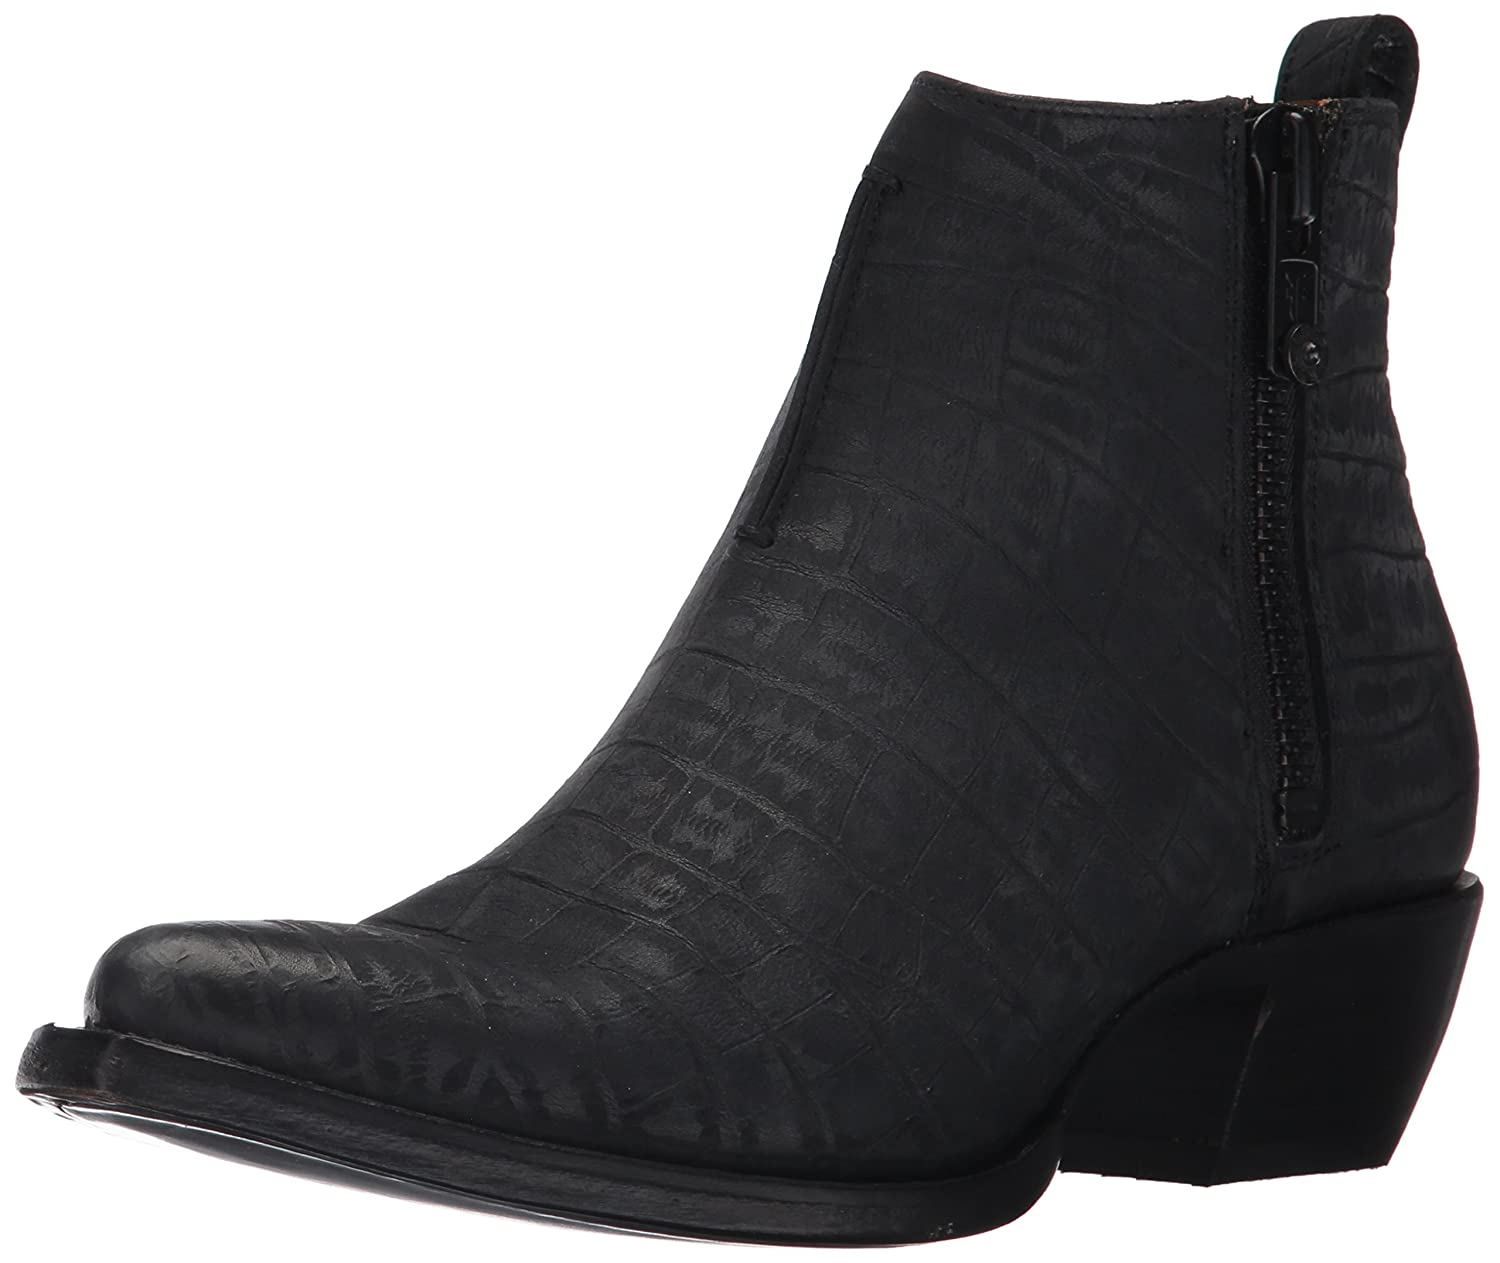 FRYE Women's Sacha Moto Shortie Ankle Bootie B01N0VTFMS 8.5 B(M) US|Black Crocodile Embossed